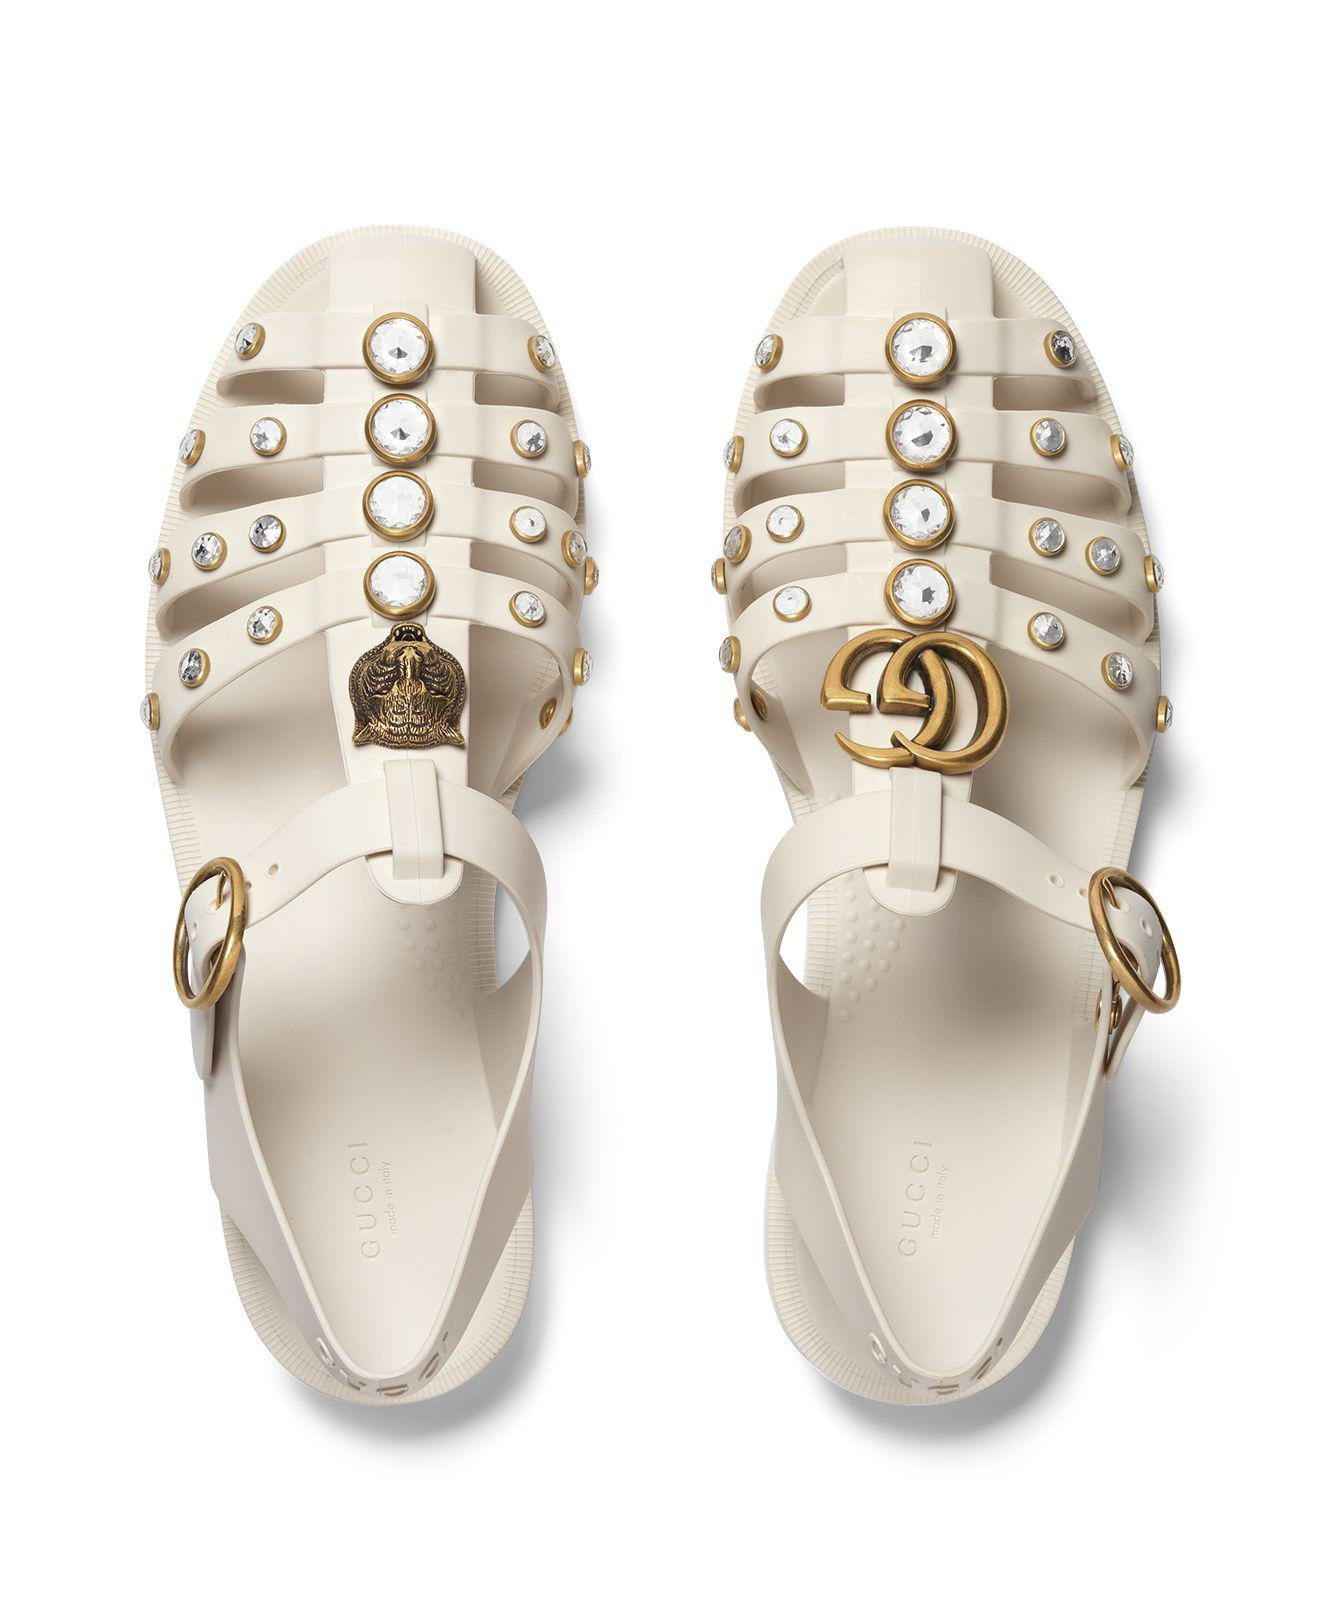 bdc08289940 Lyst - Gucci Rubber Sandal With Crystals